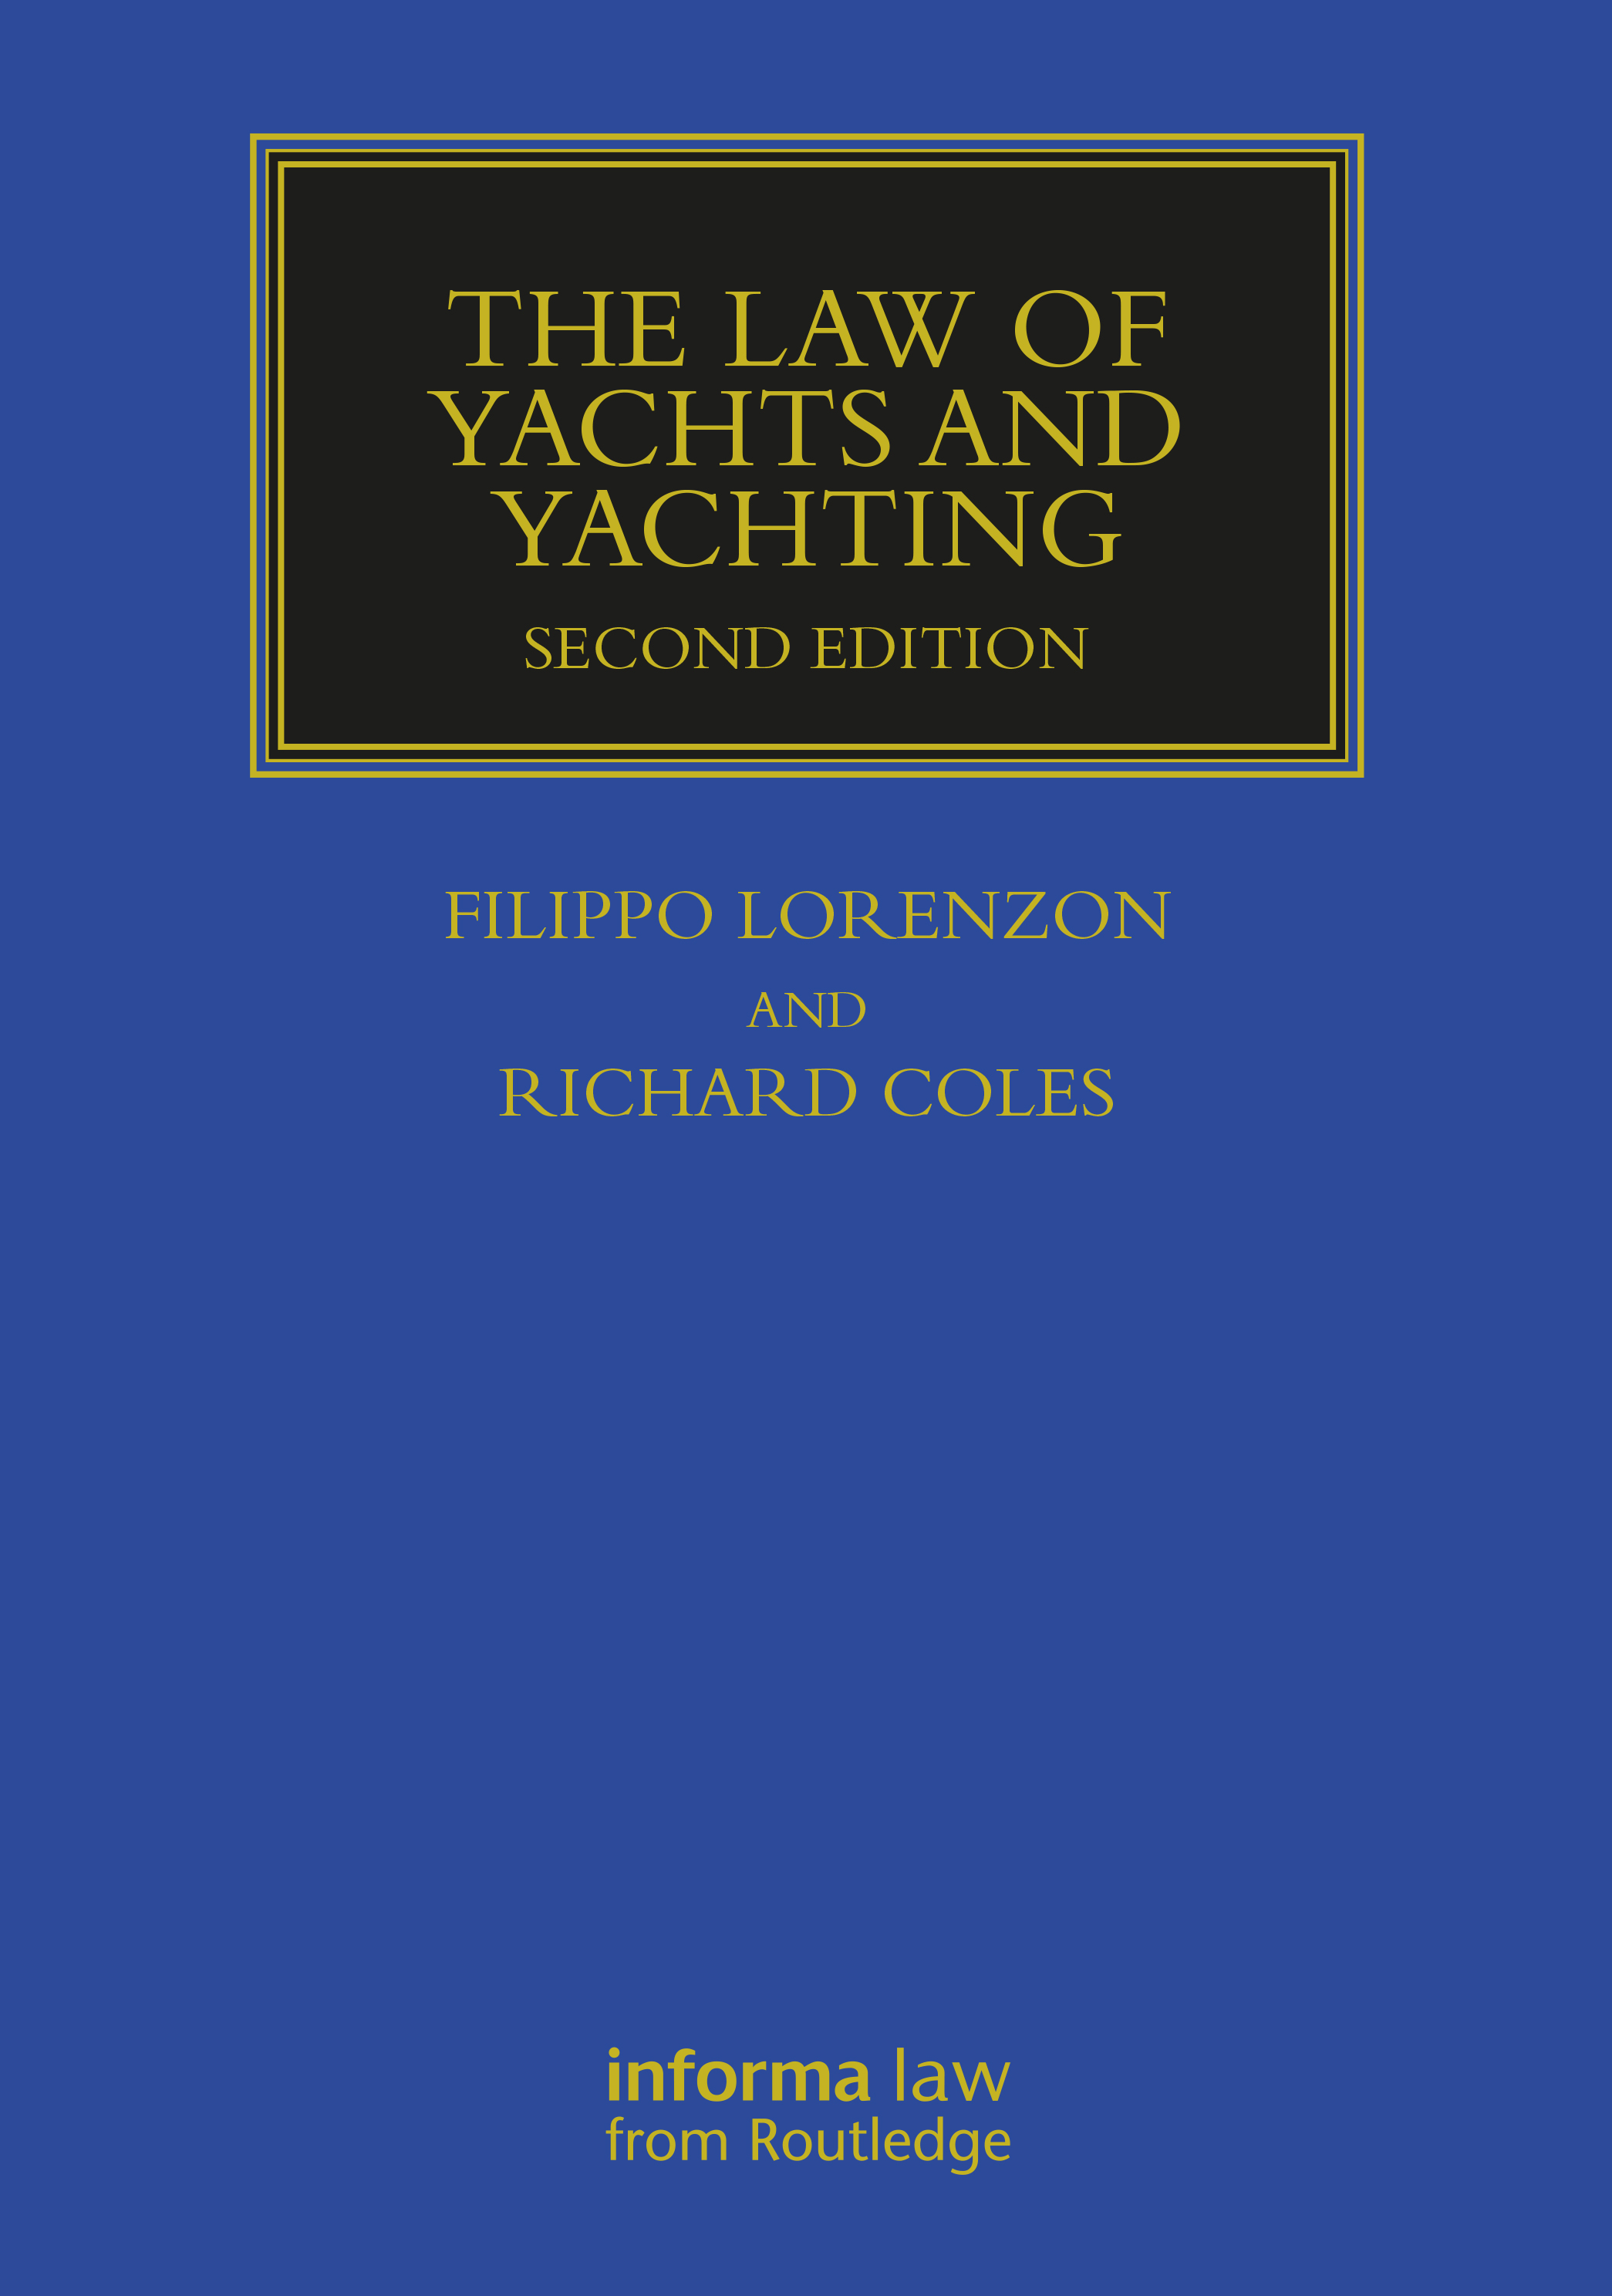 The Law of Yachts & Yachting book cover